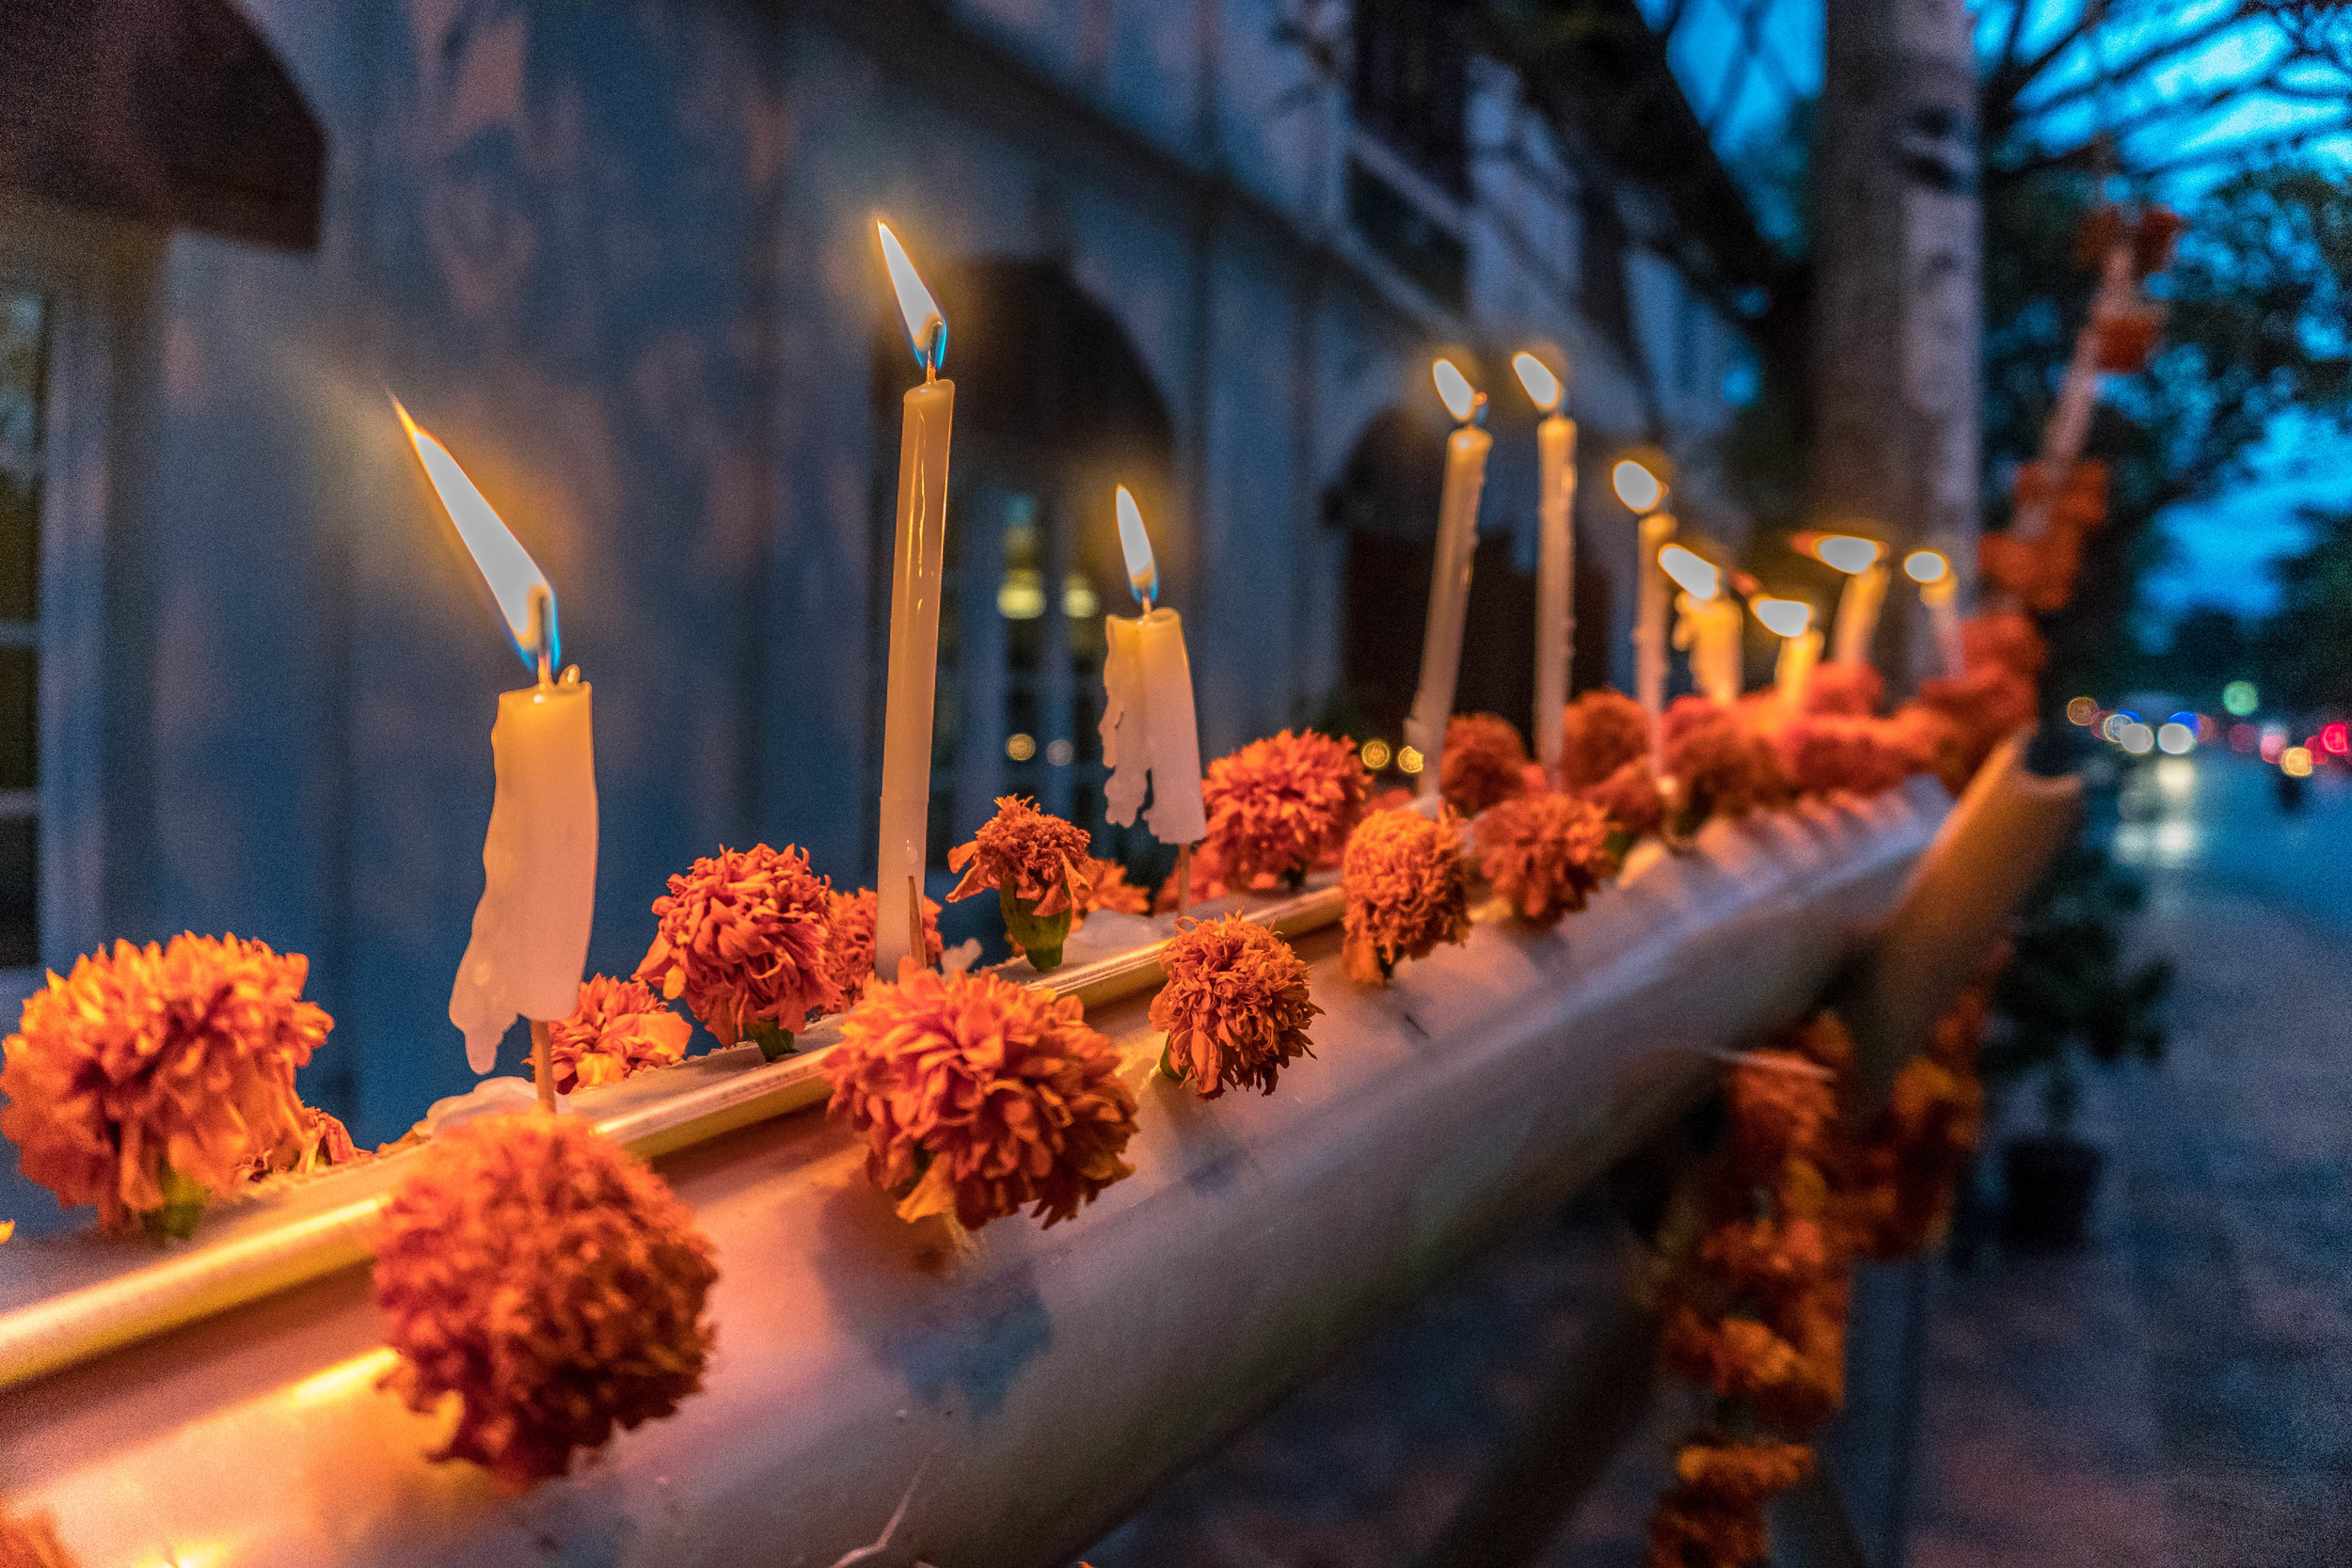 CANDLES BEING LIT AT DUSK